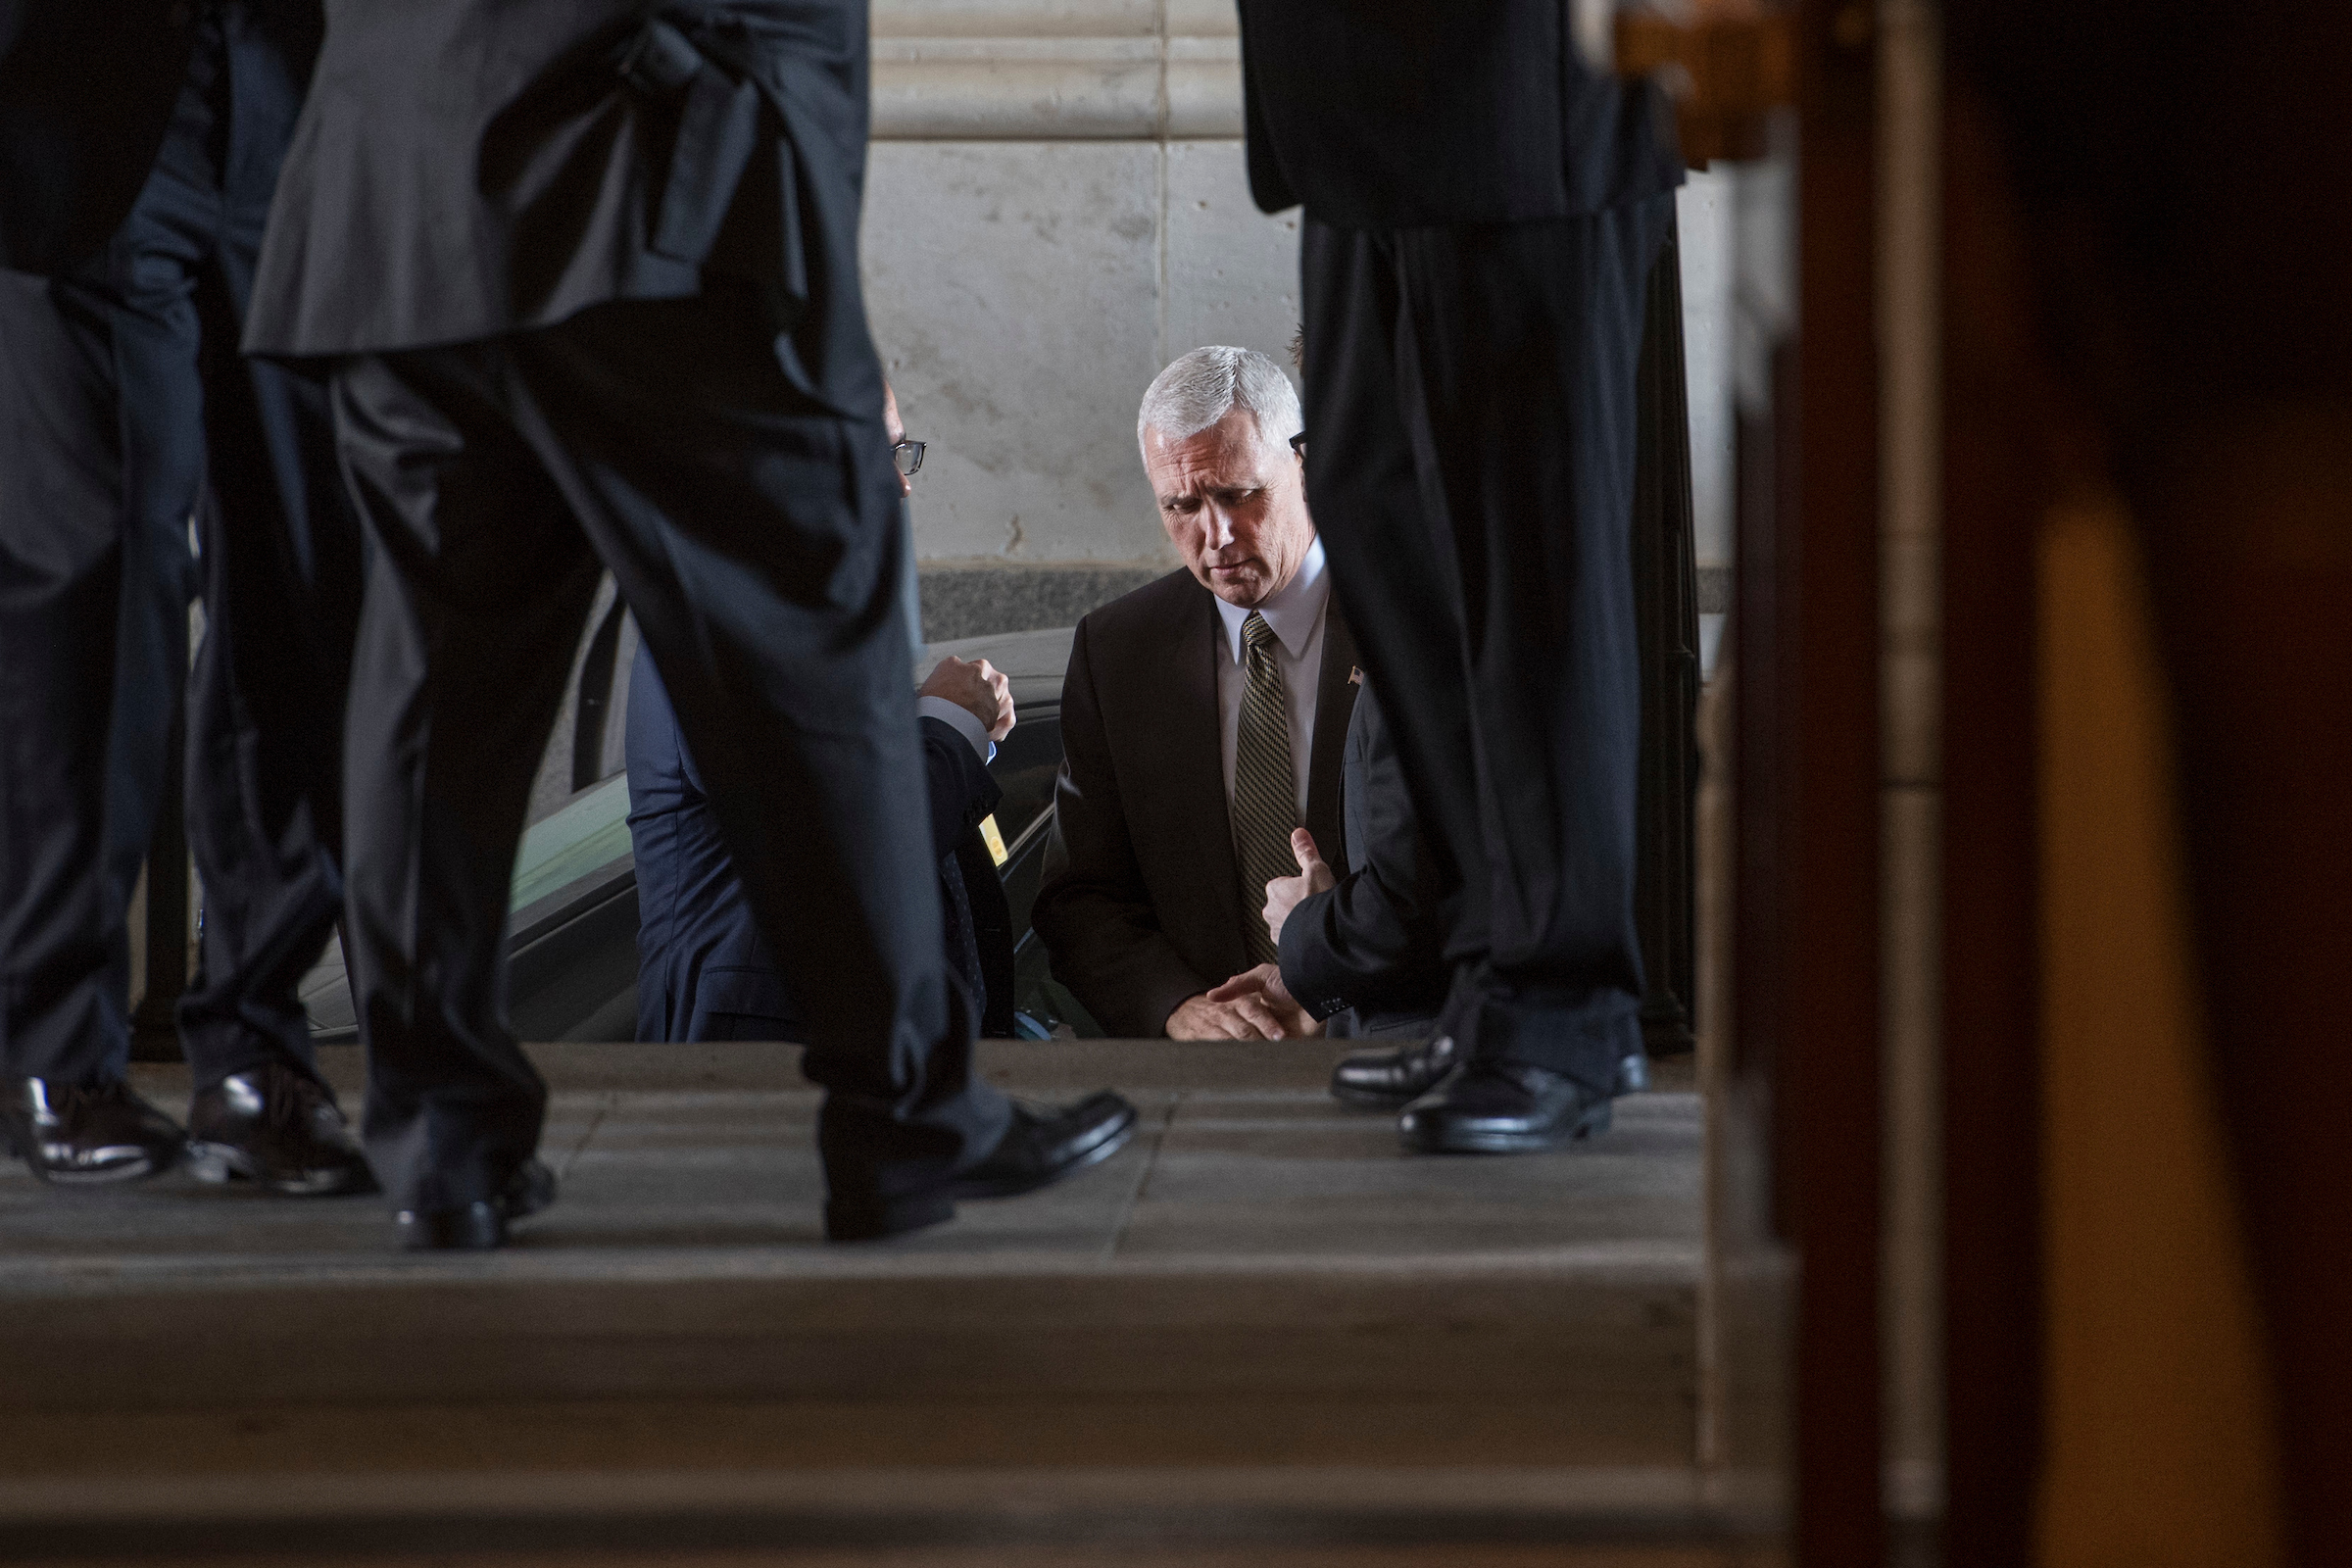 UNITED STATES - FEBRUARY 08: Vice President Mike Pence arrives in the House side carriage entrance of the Capitol for a meeting, February 8, 2017. (Photo By Tom Williams/CQ Roll Call)